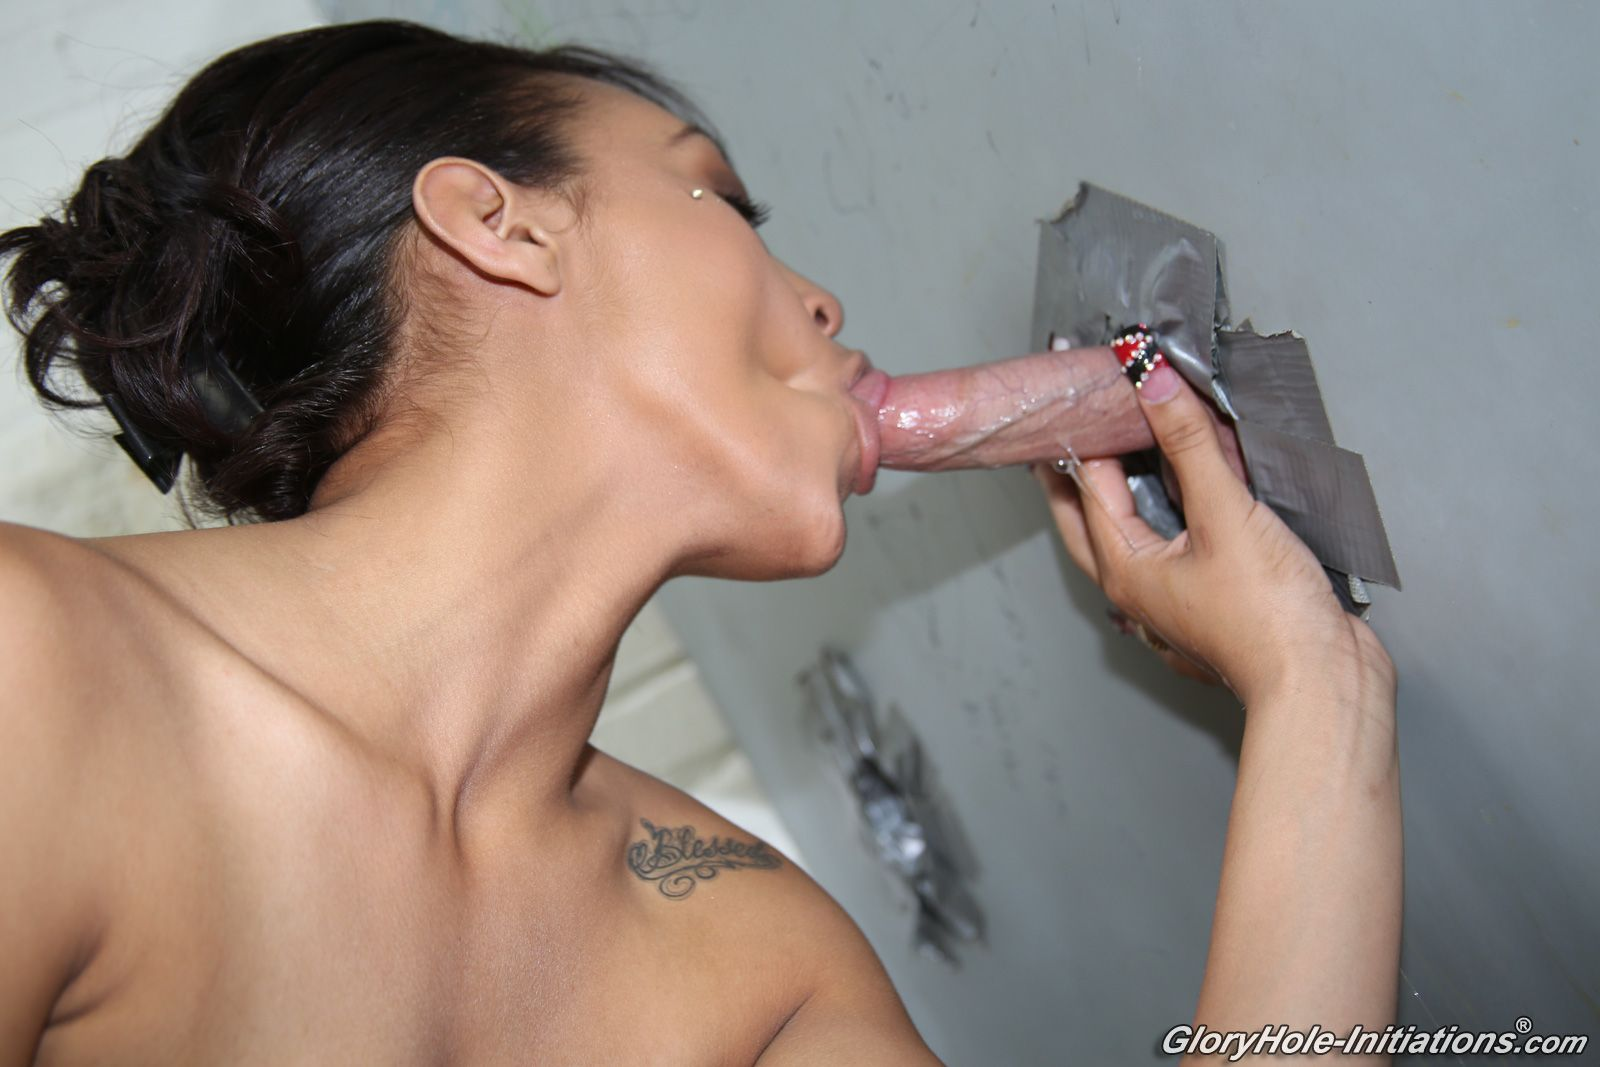 Cherry hilson gloryhole initiations - 3 part 3